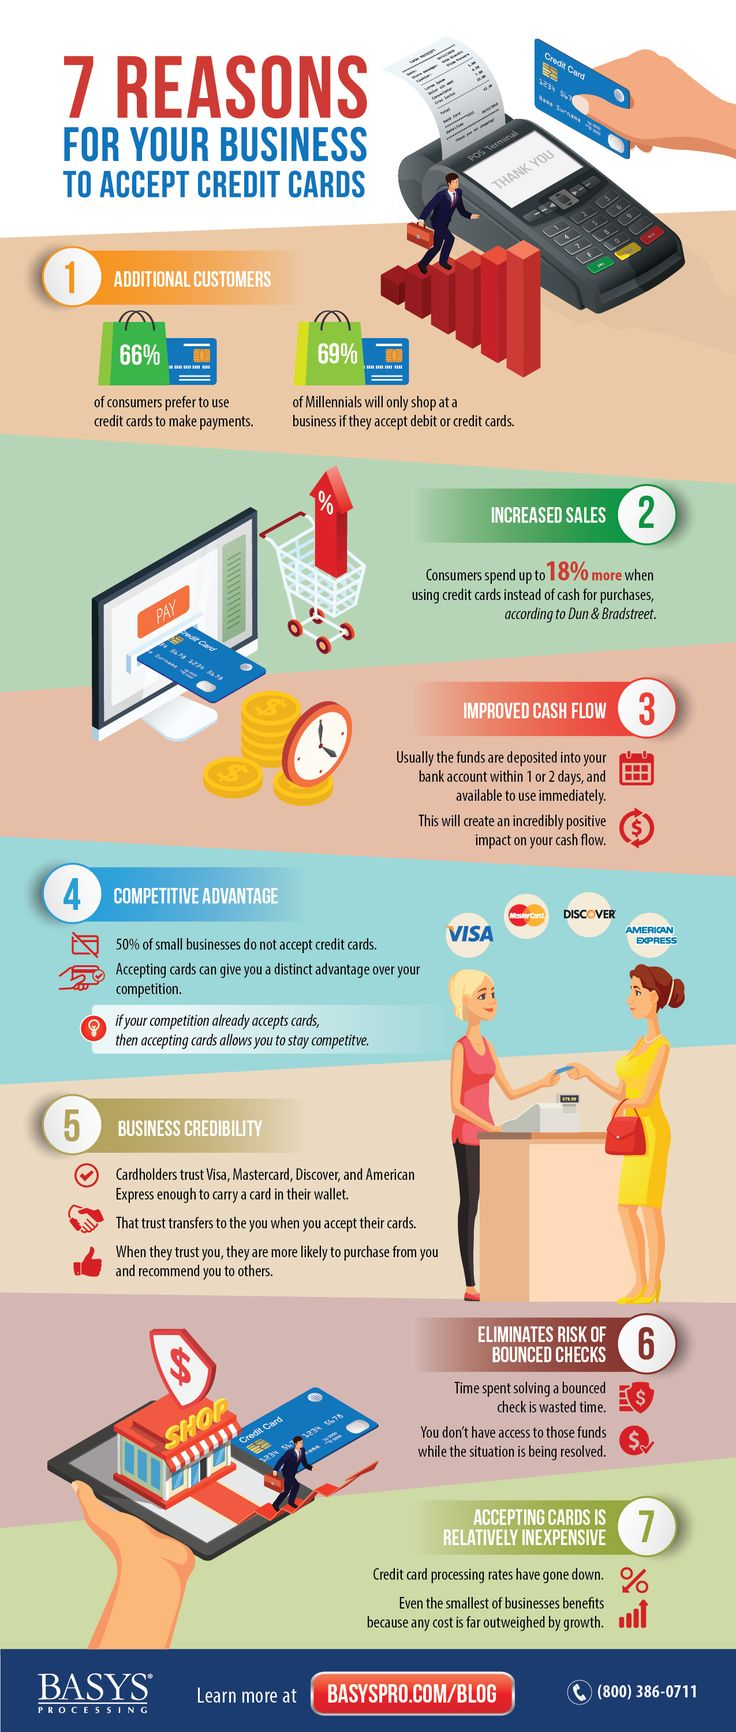 25 best Merchant Services images by BASYS Processing on Pinterest ...